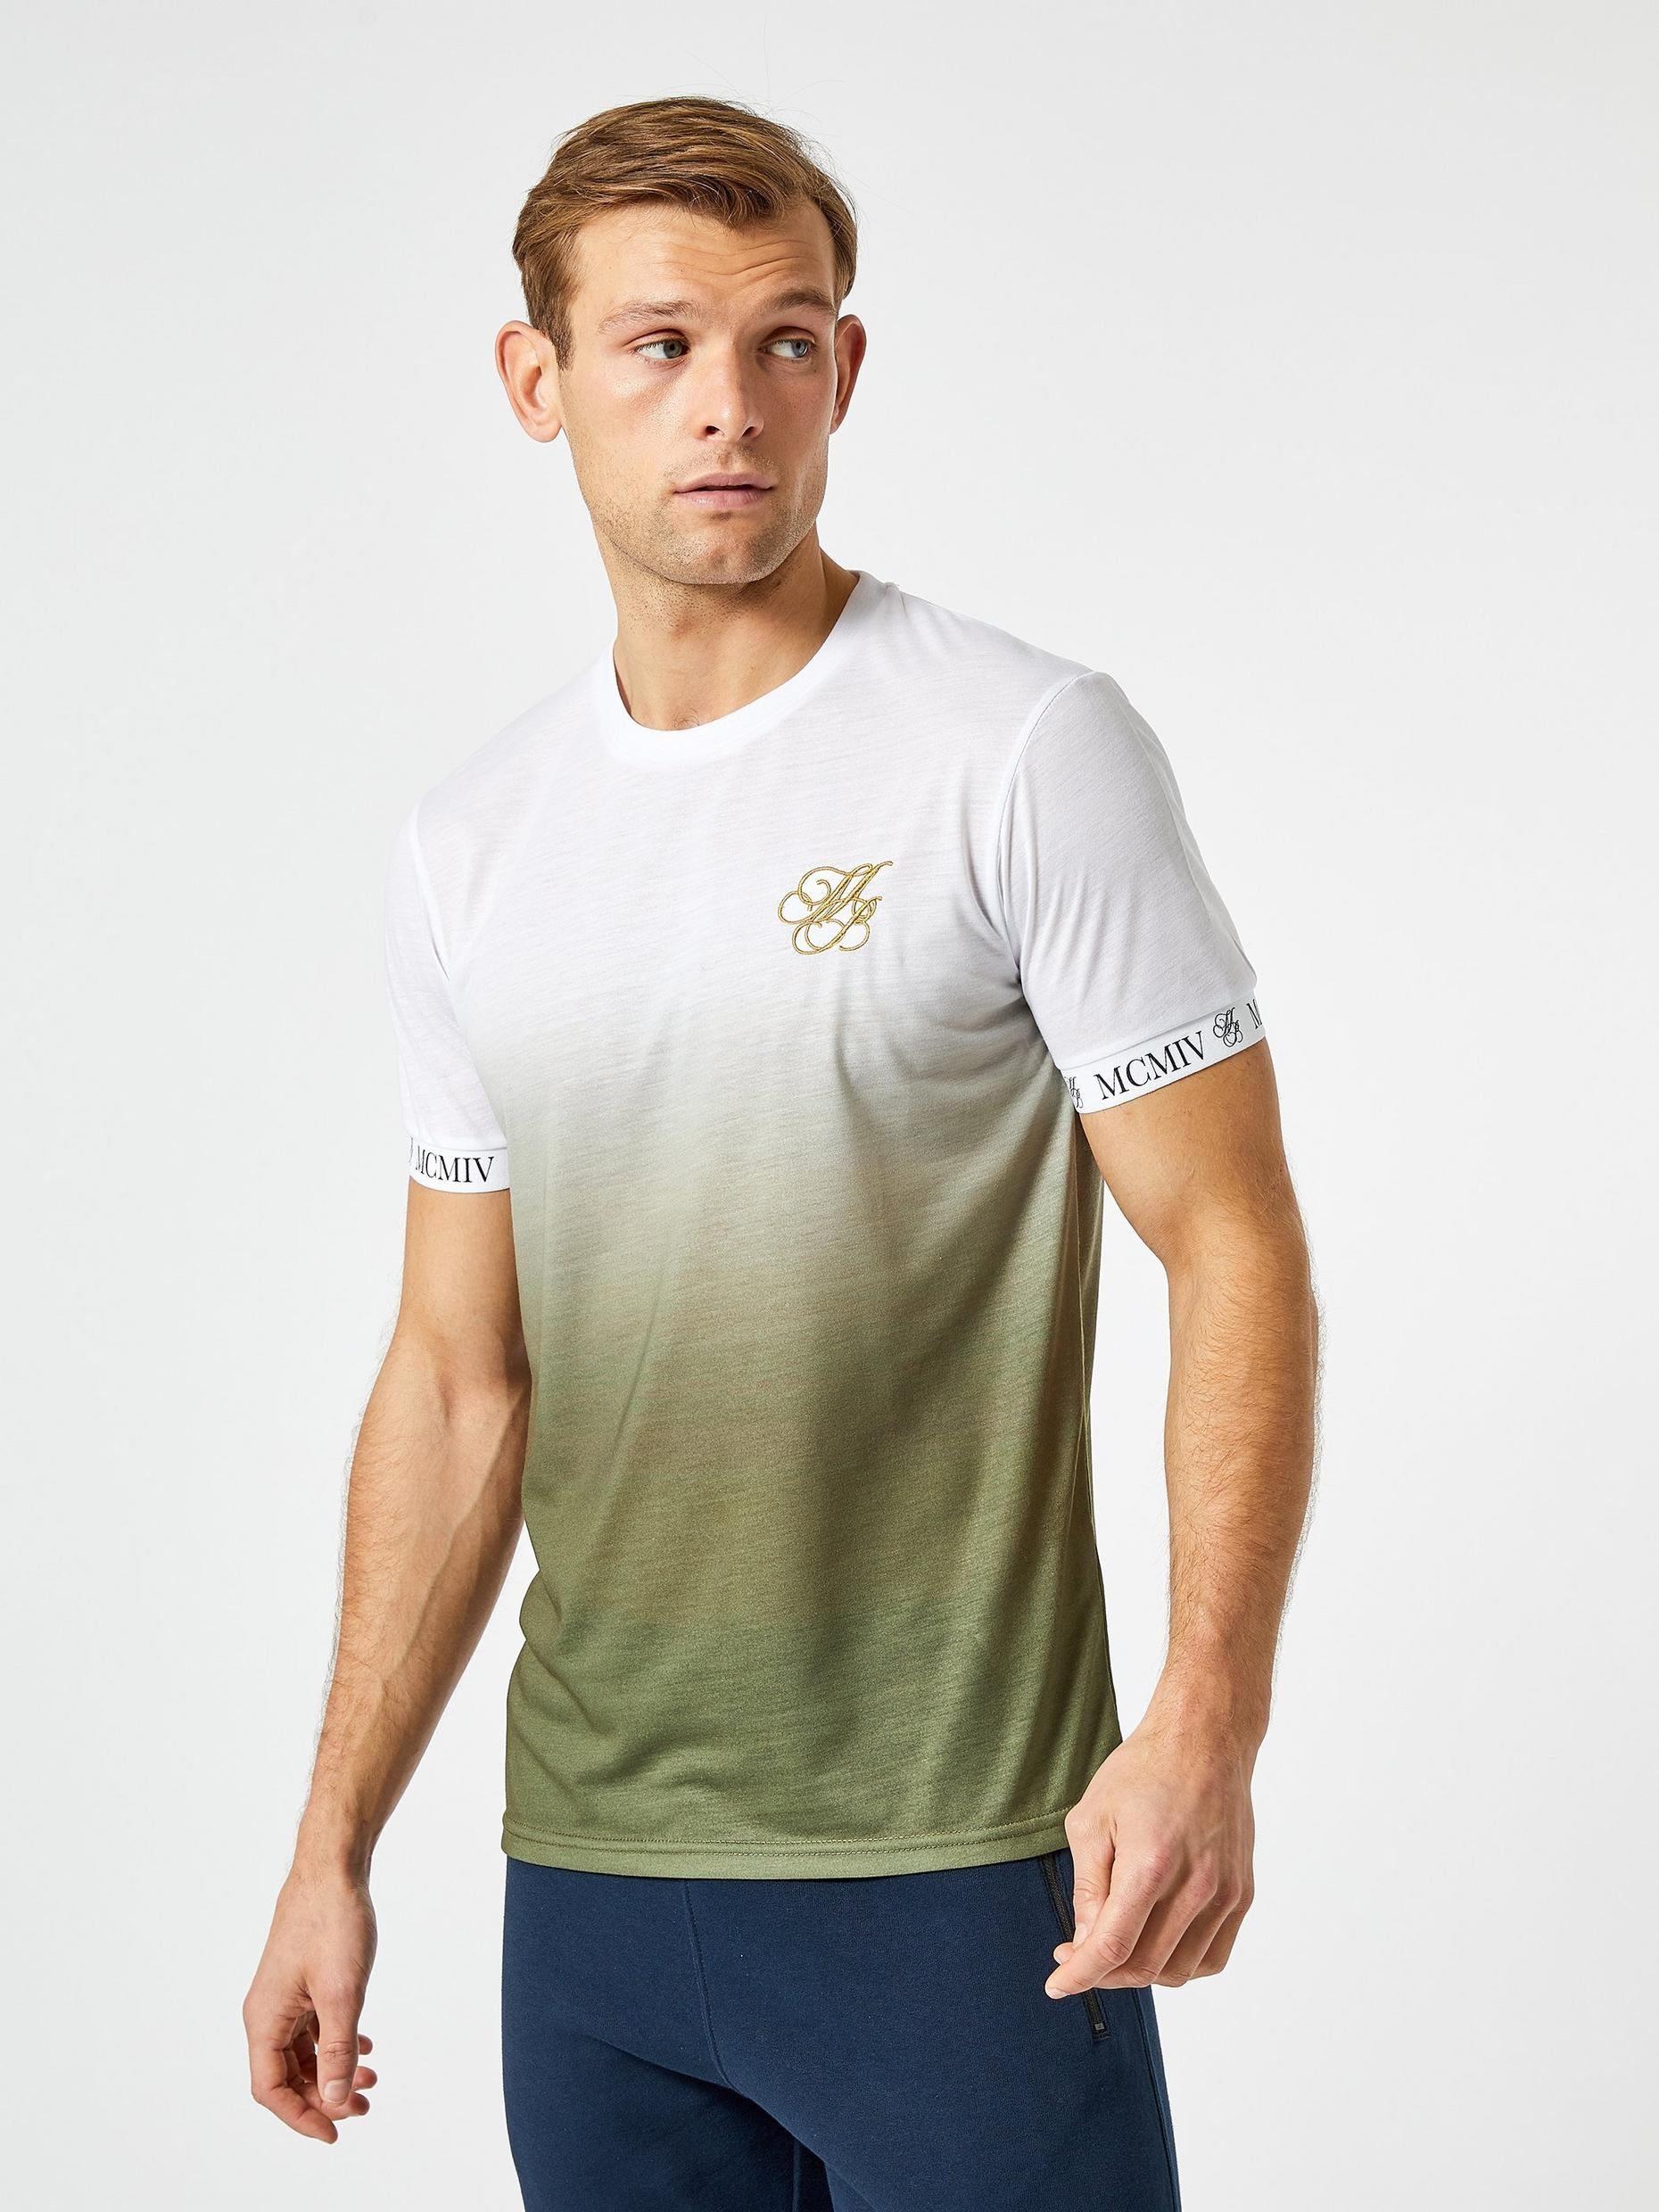 Khaki and White Ombre TShirt with MB Embroidery